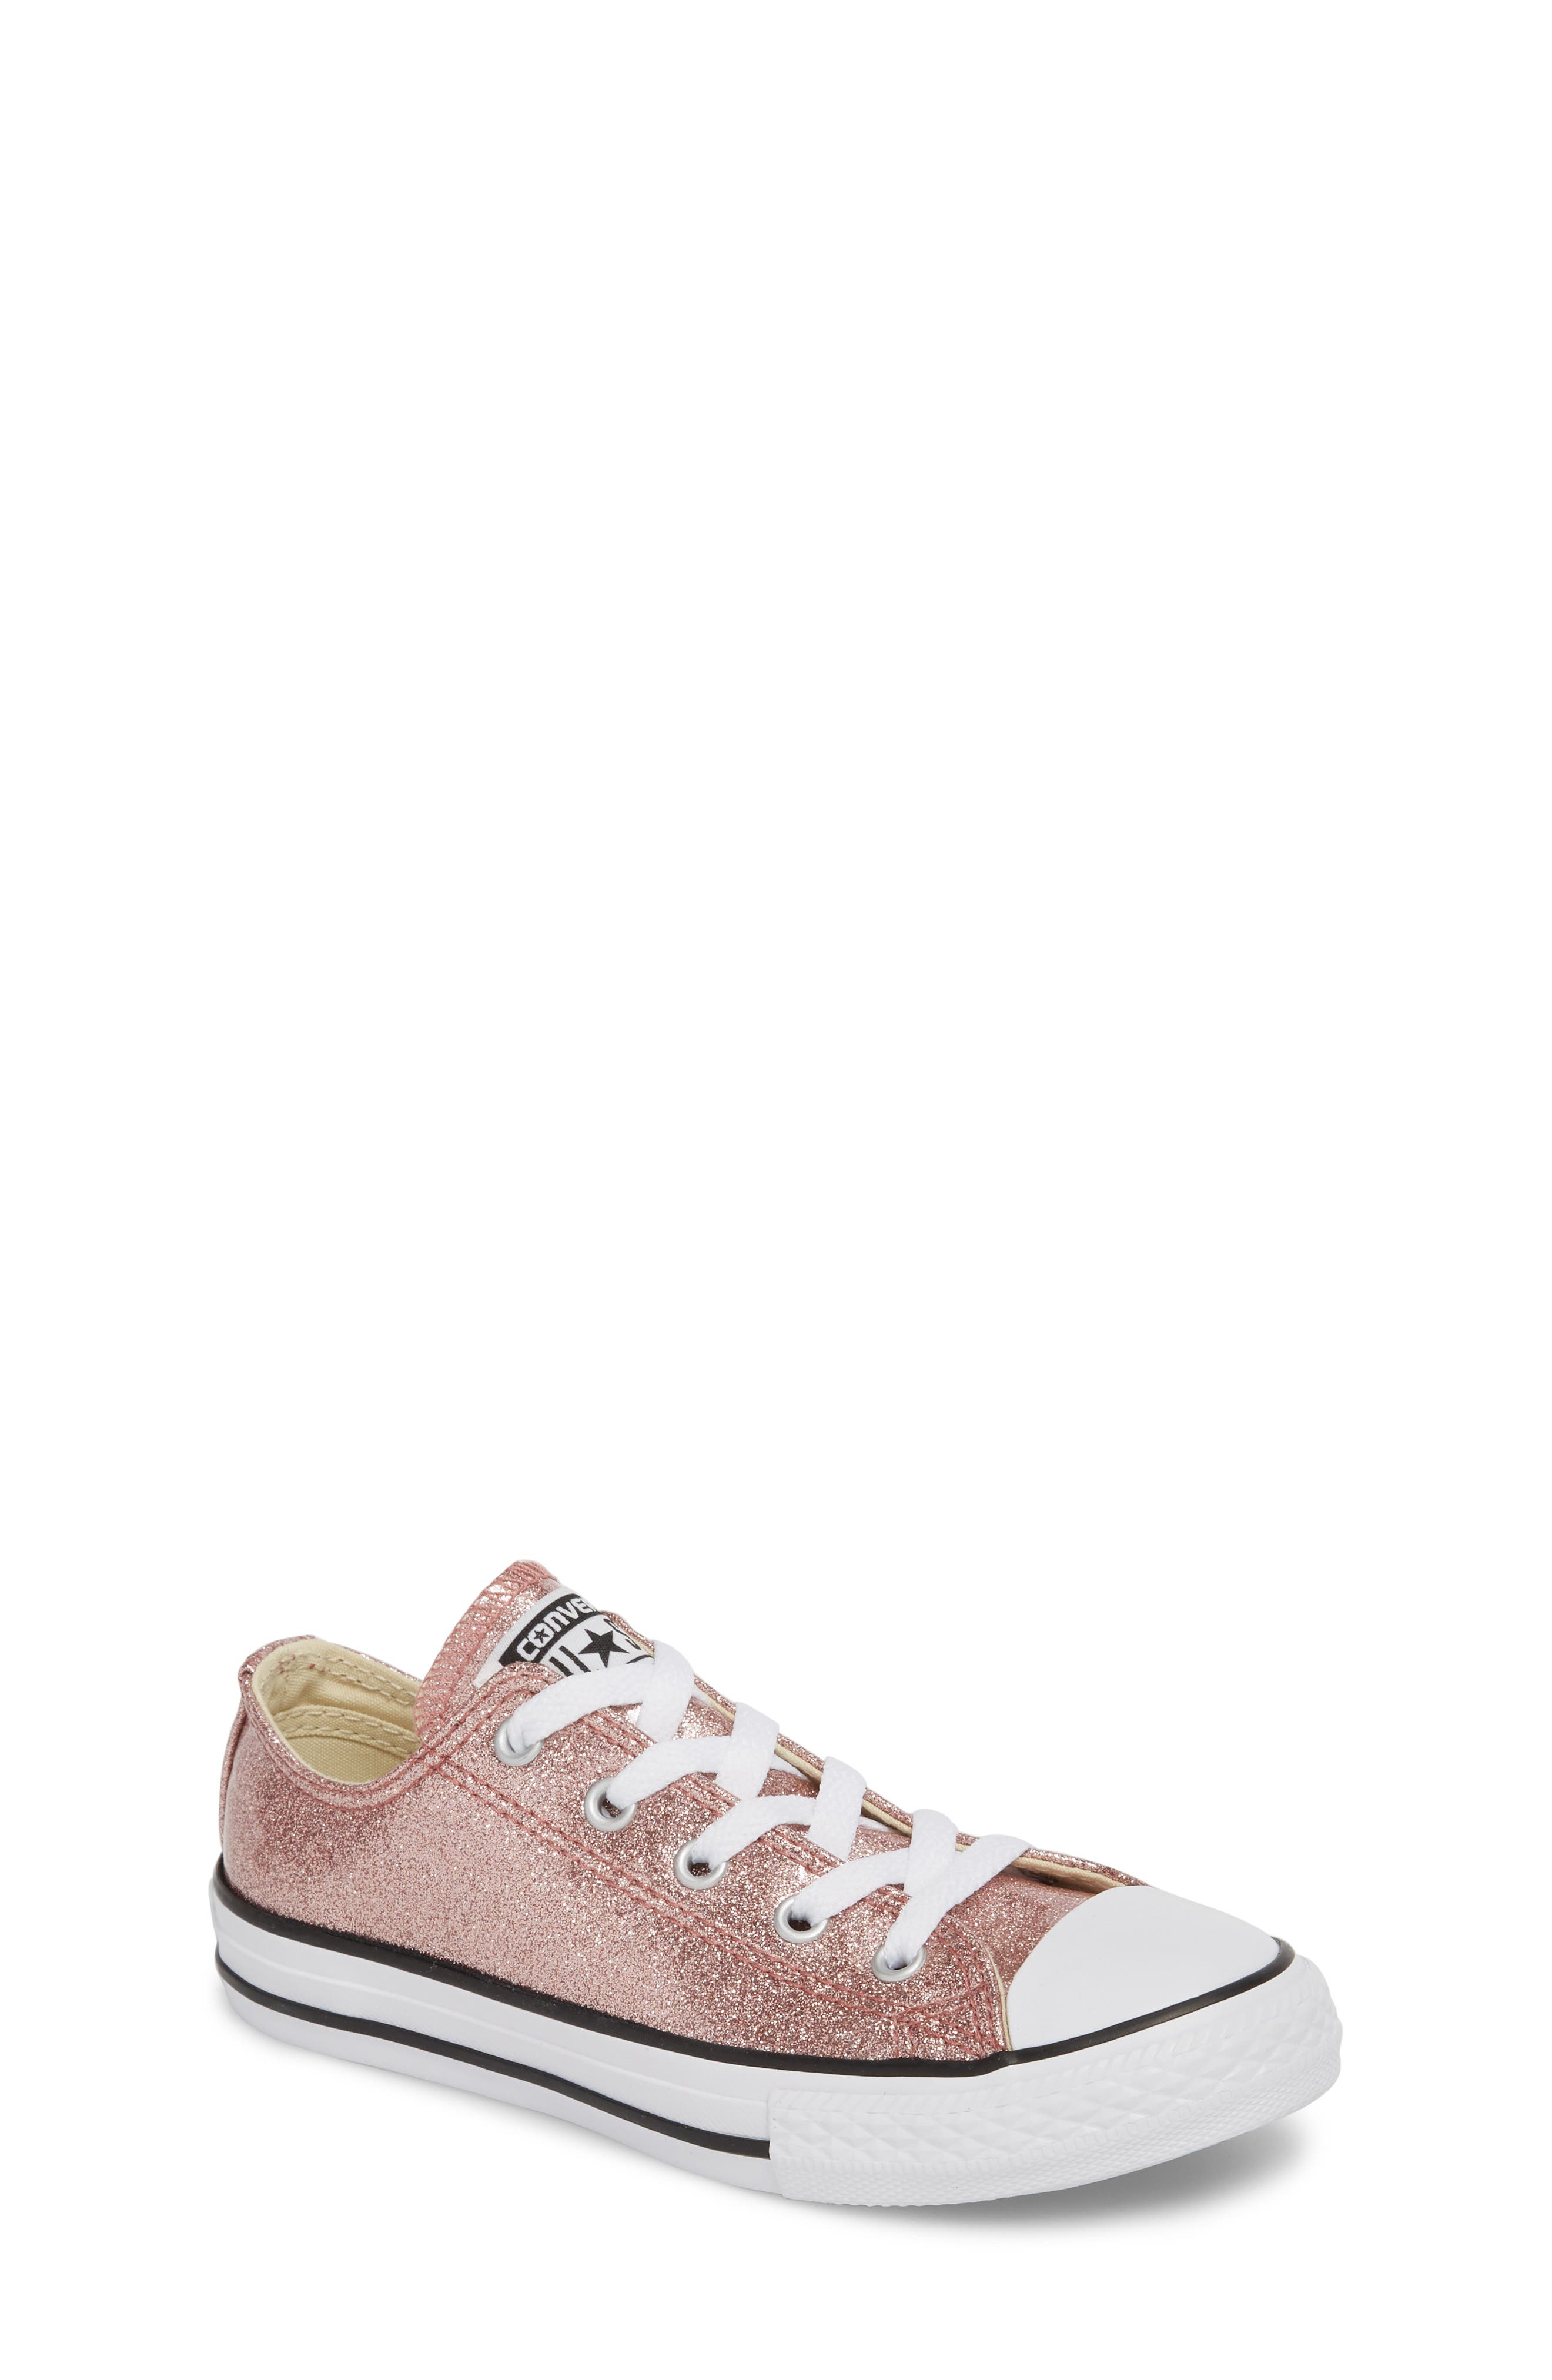 Chuck Taylor<sup>®</sup> All Star<sup>®</sup> Glitter Slip-On,                         Main,                         color, 220